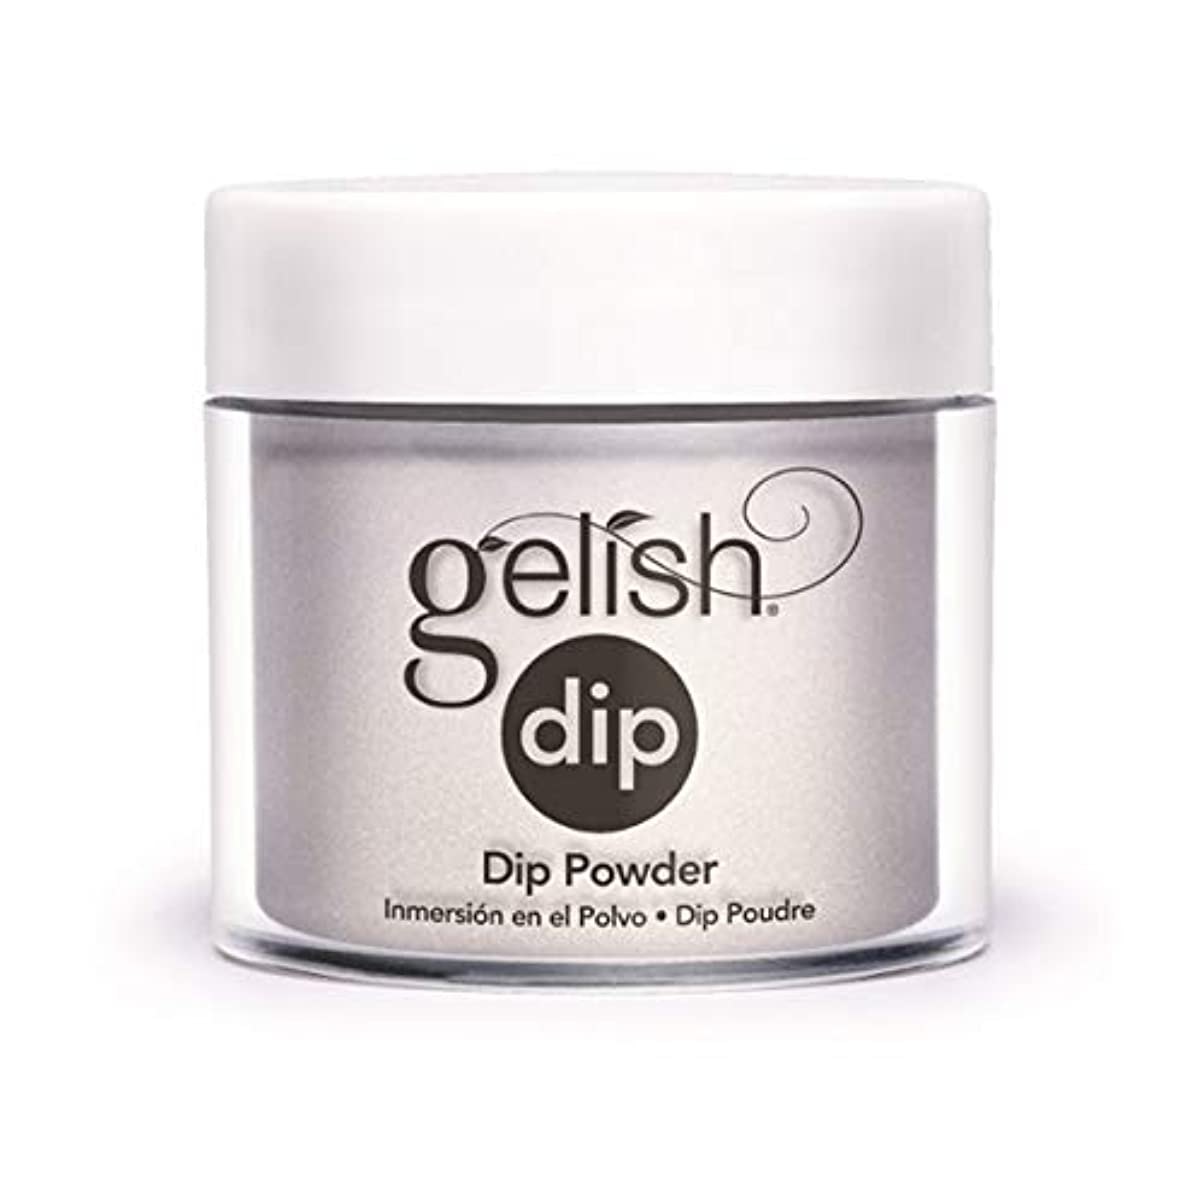 Harmony Gelish - Dip Powder - Forever Marilyn Fall 2019 Collection - Some Girls Prefer Pearls - 23g / 0.8oz